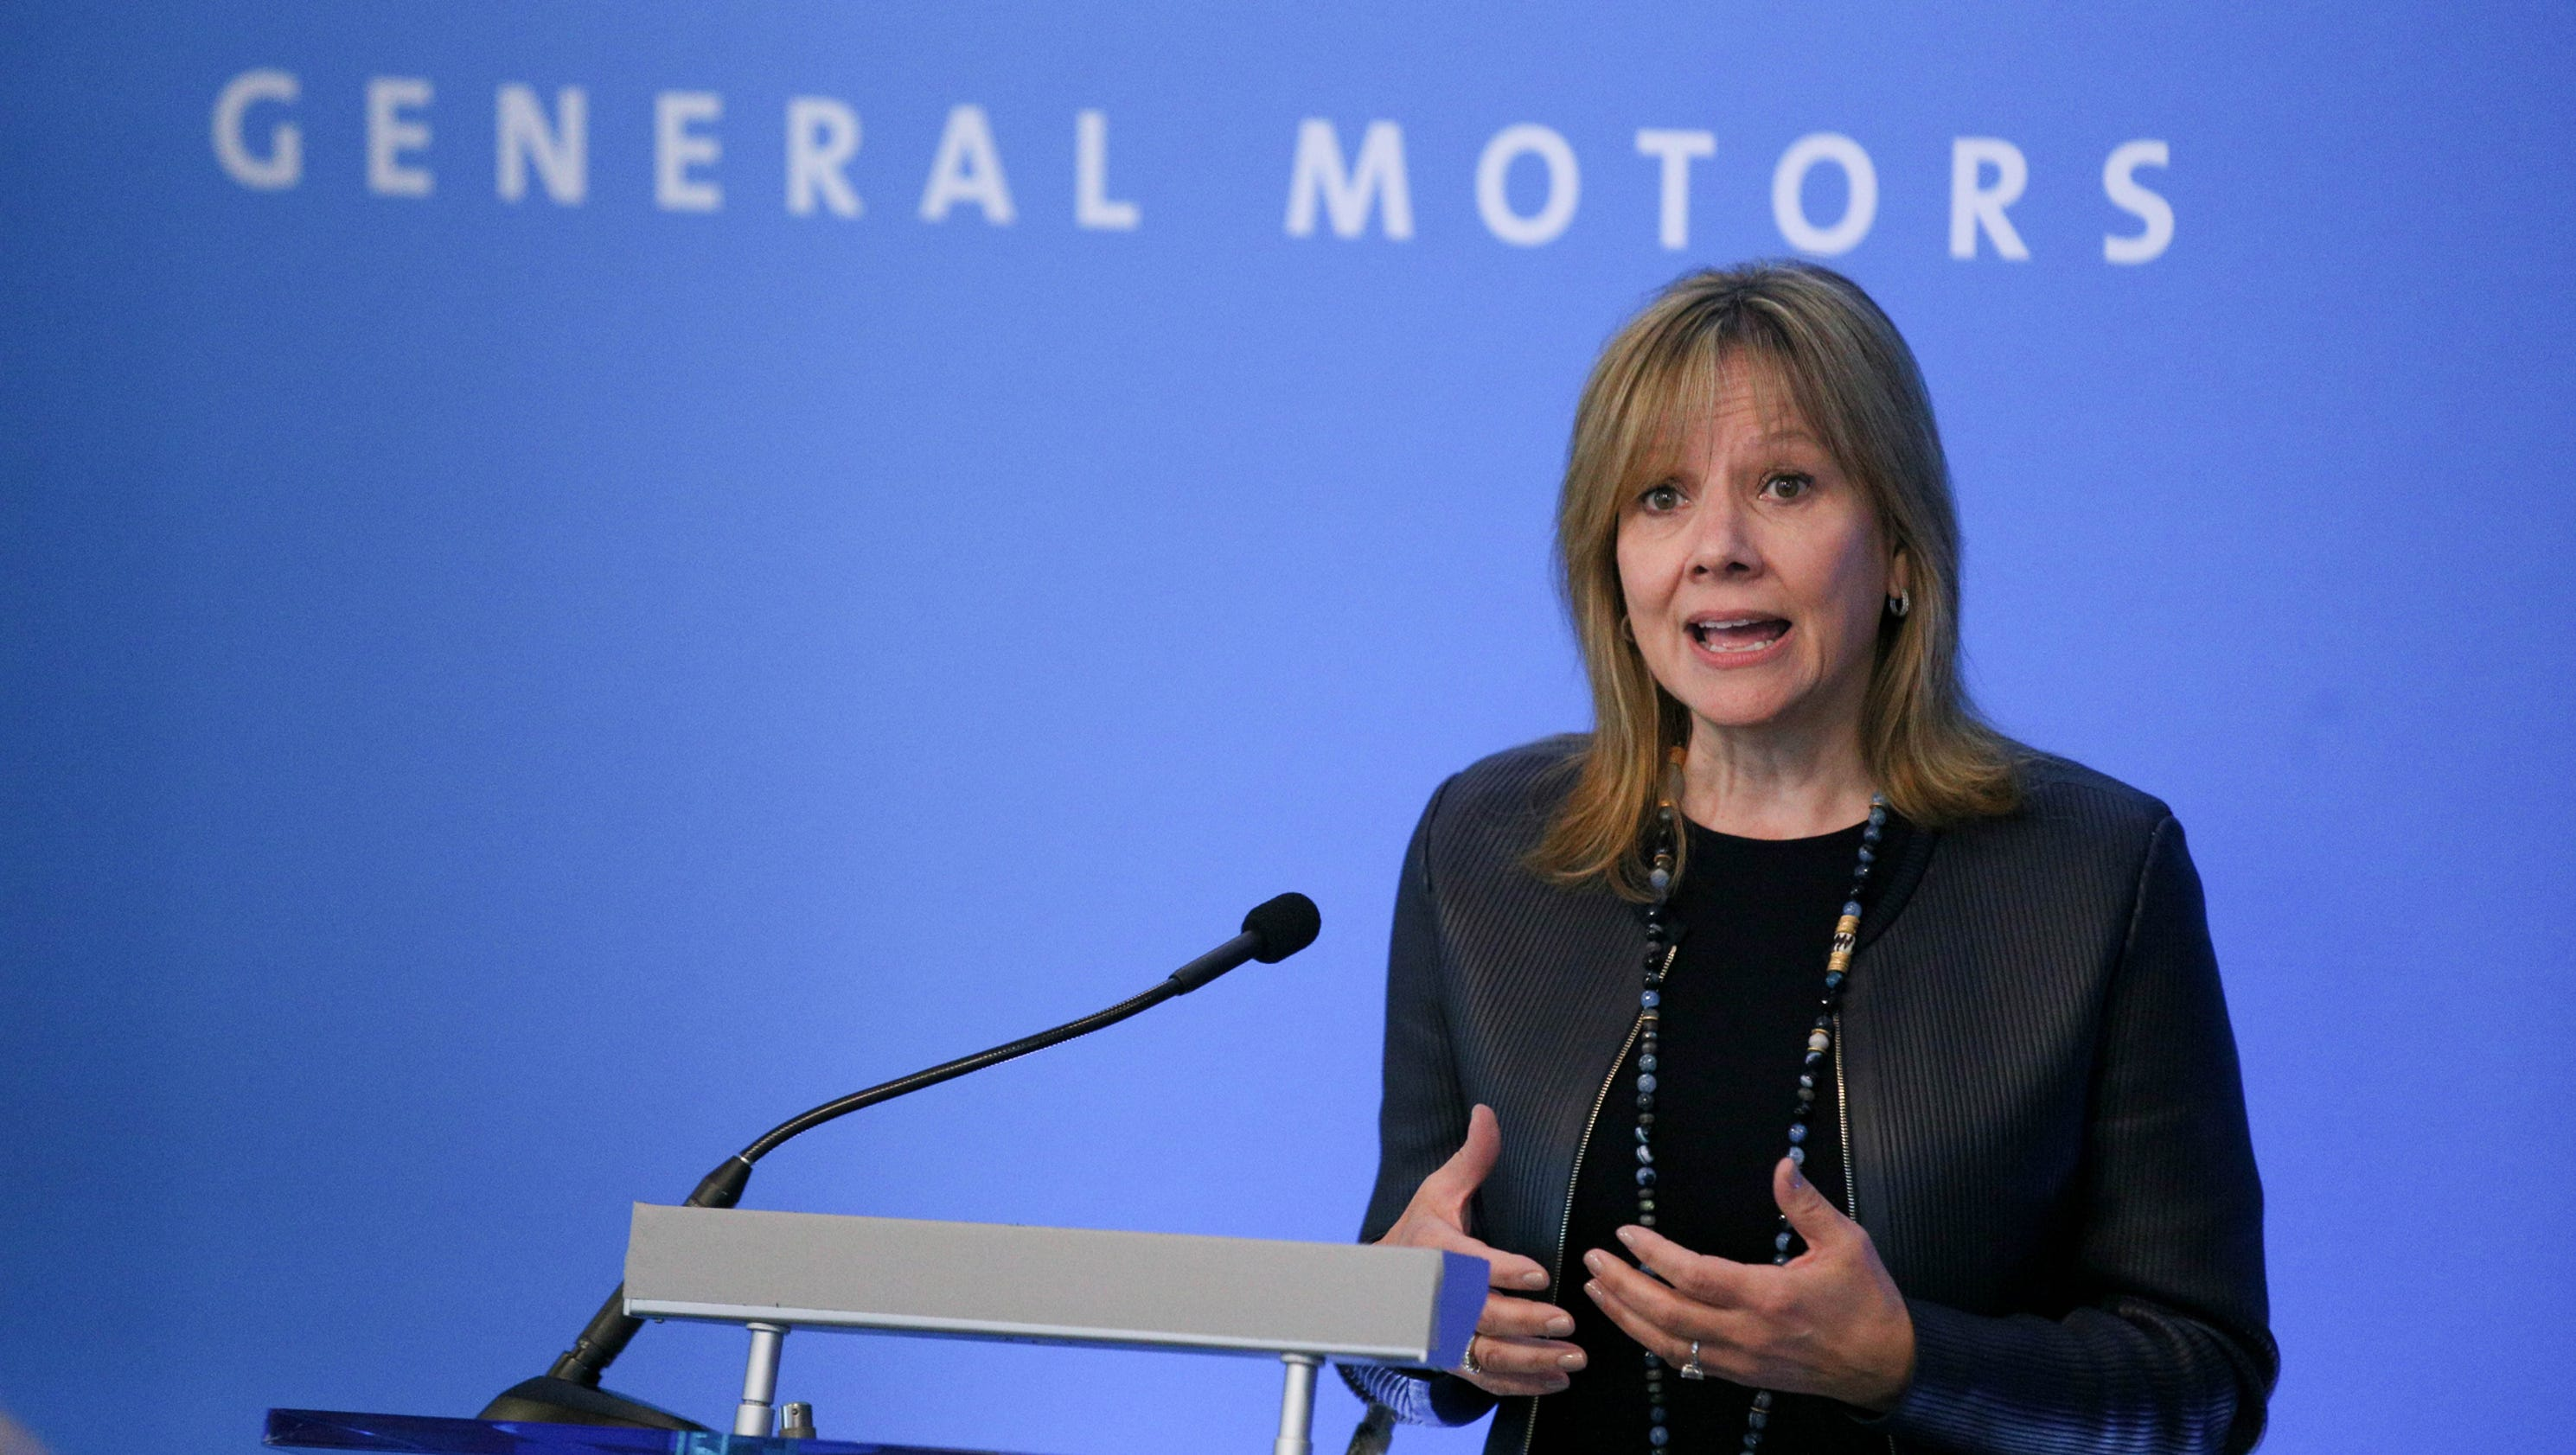 GM's self-driving car unit to get $3.35B investment, plans to bring vehicles to market next year